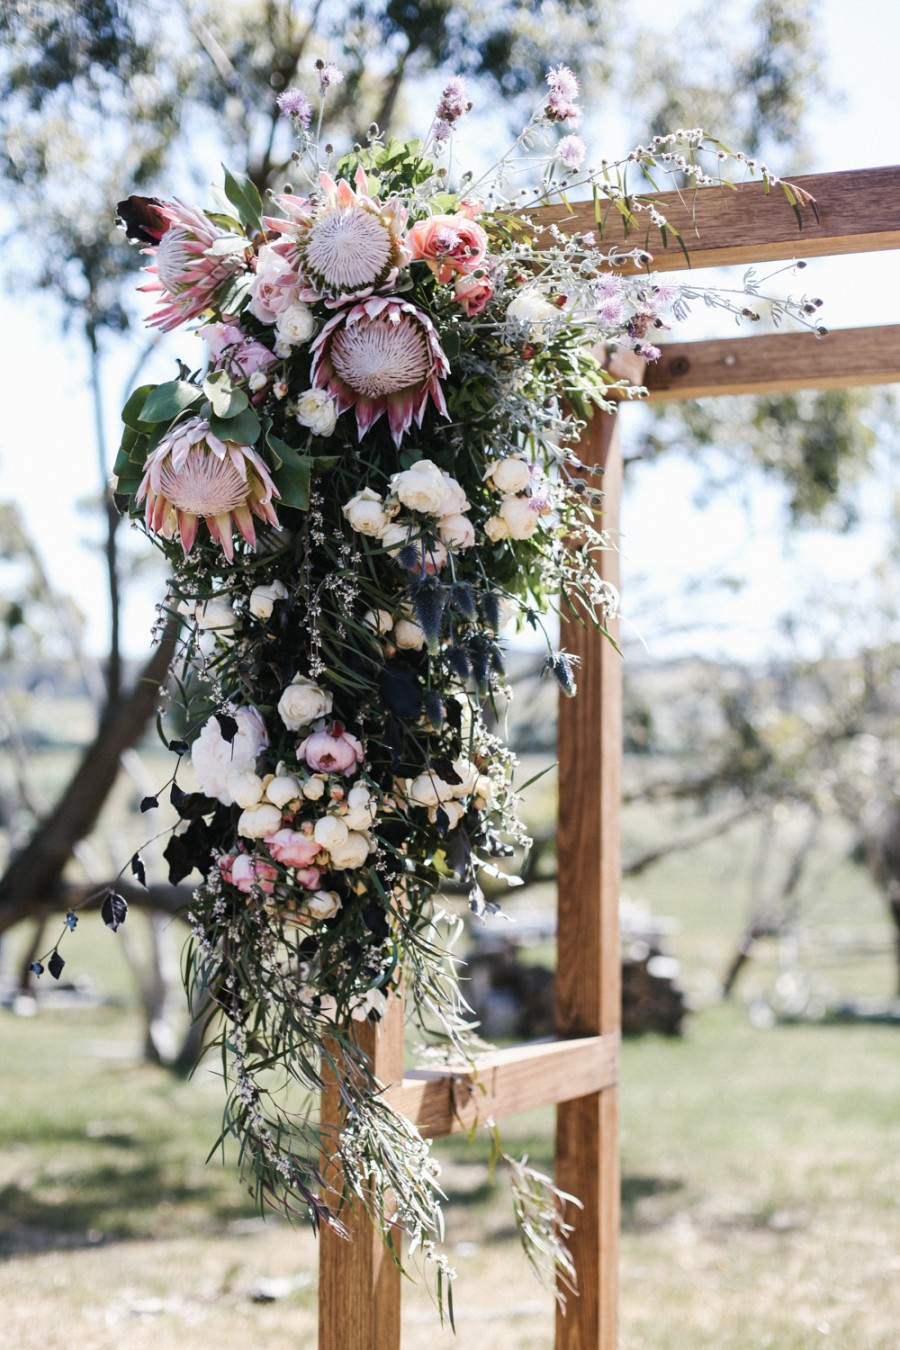 Wedding Arch and Florals